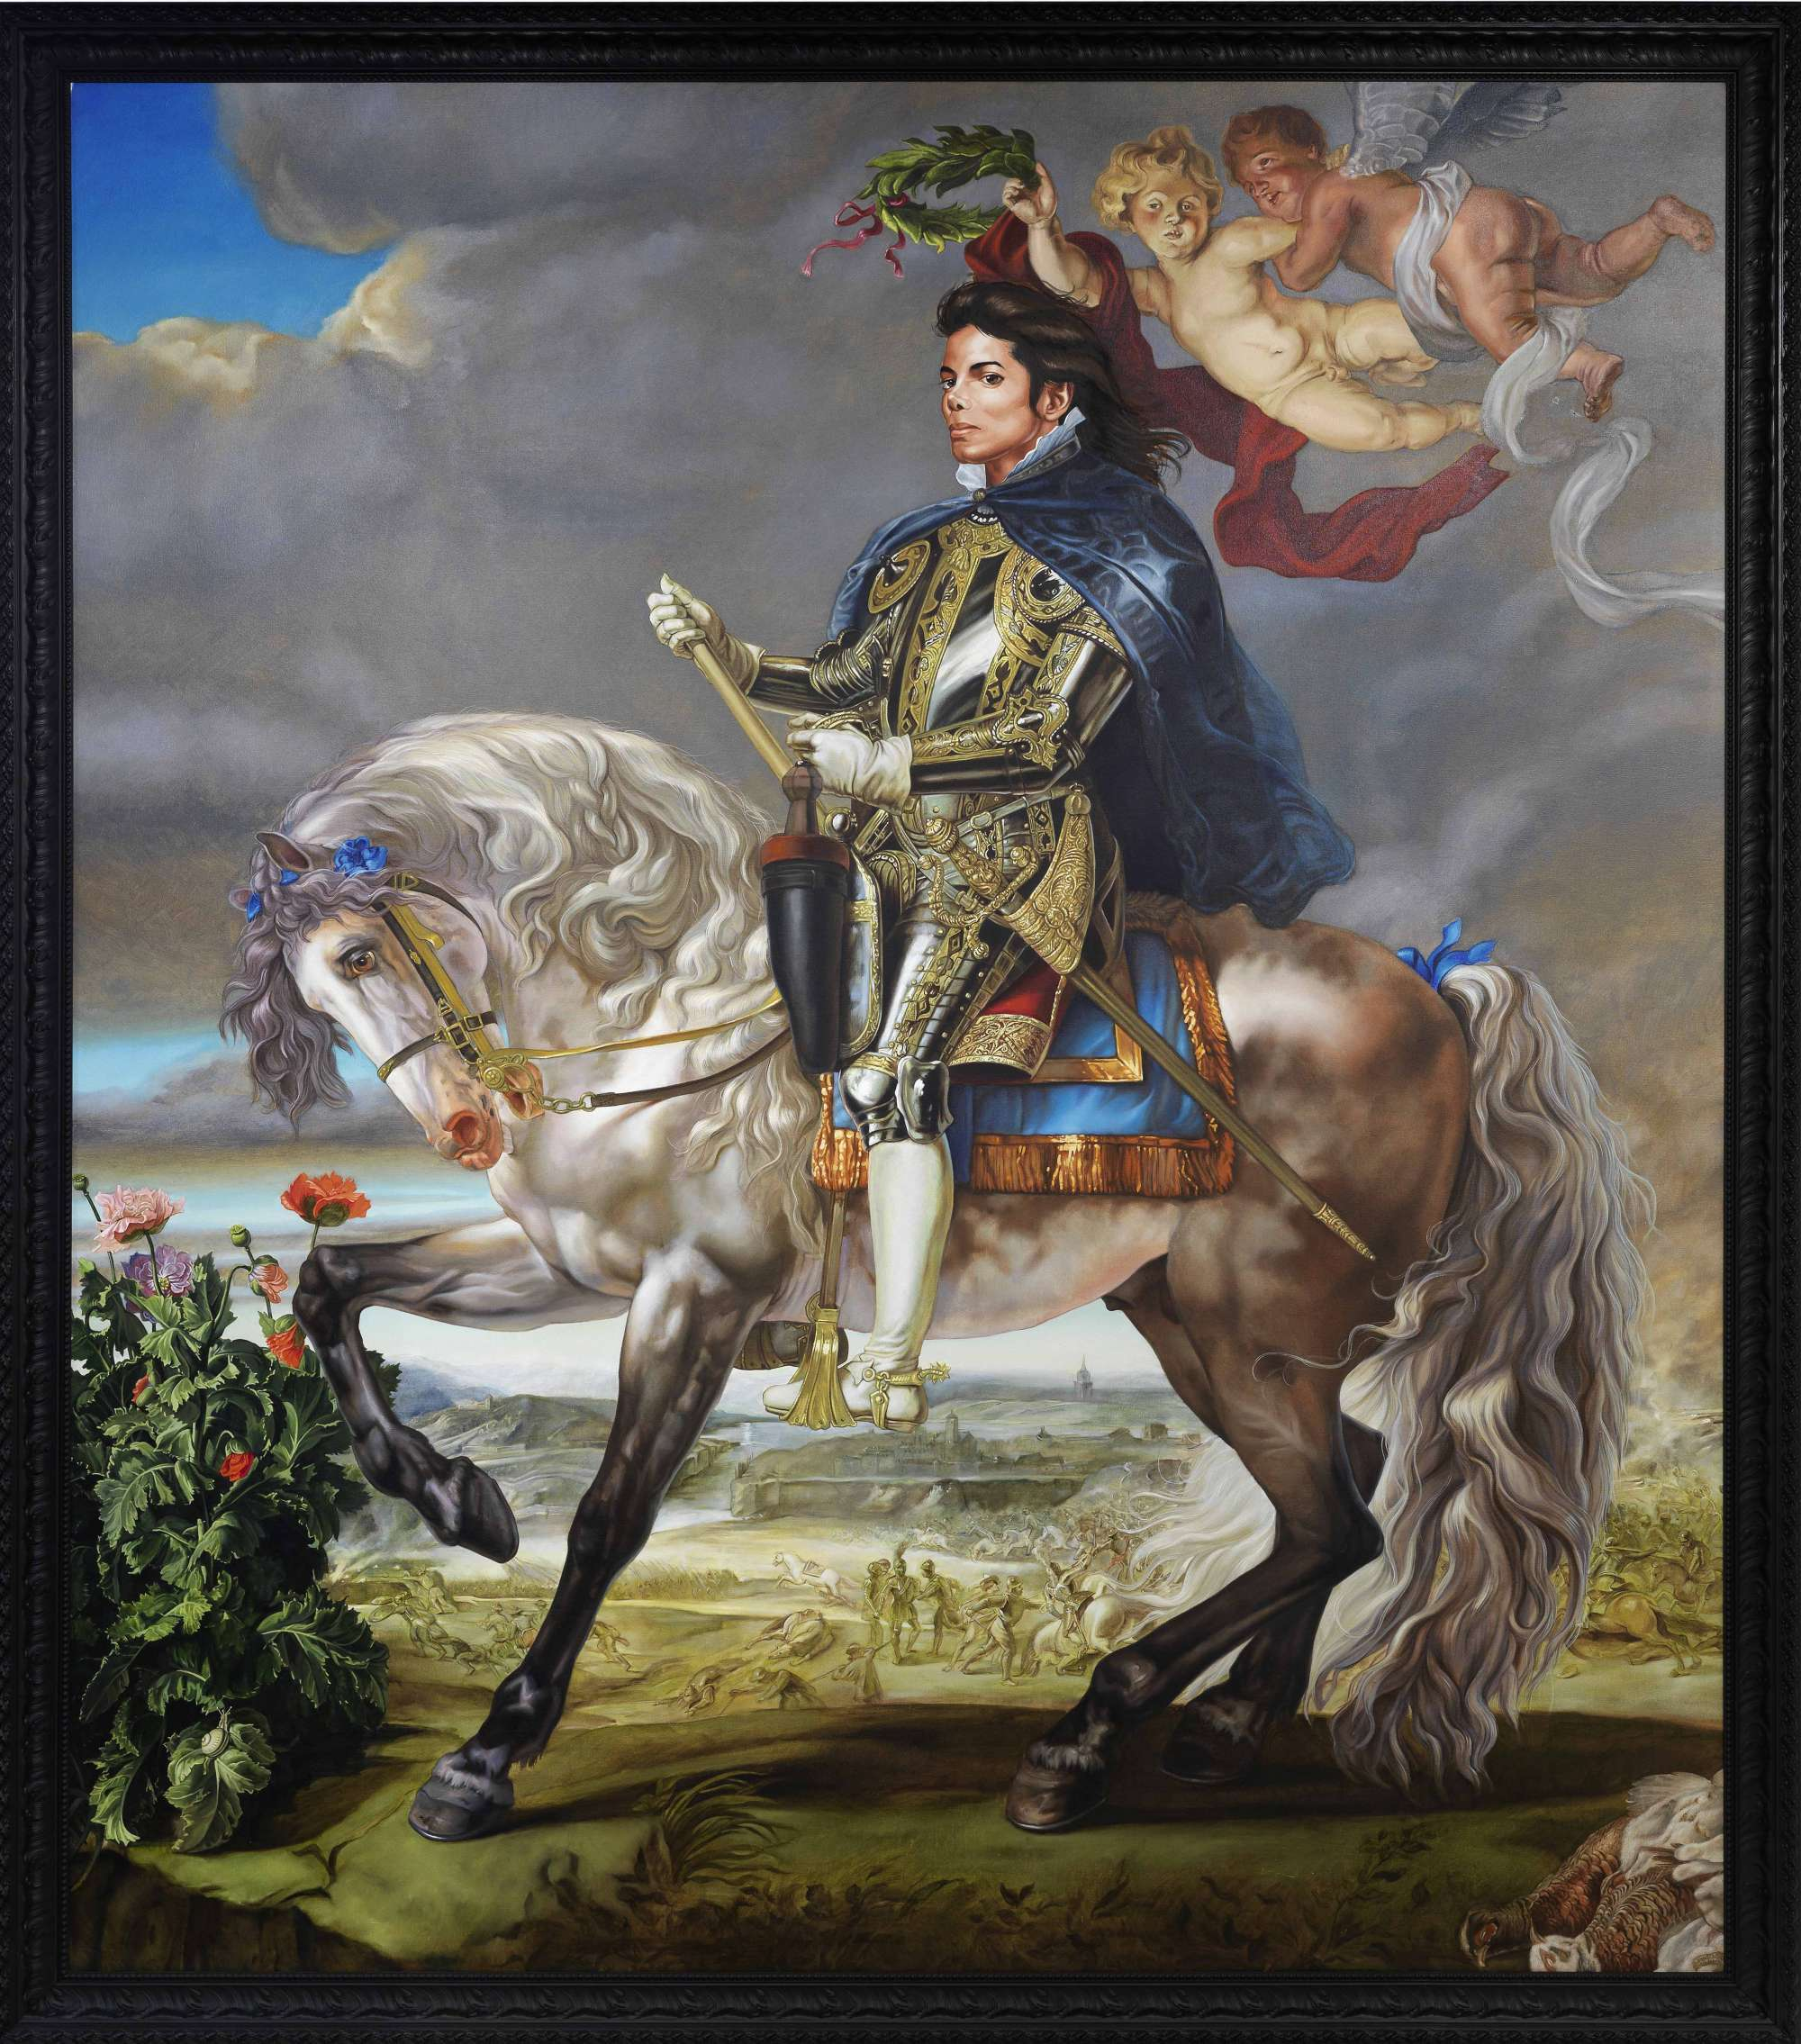 Equestrian Portrait of King Philip II (Michael Jackson), 2010 by Kehinde Wiley.